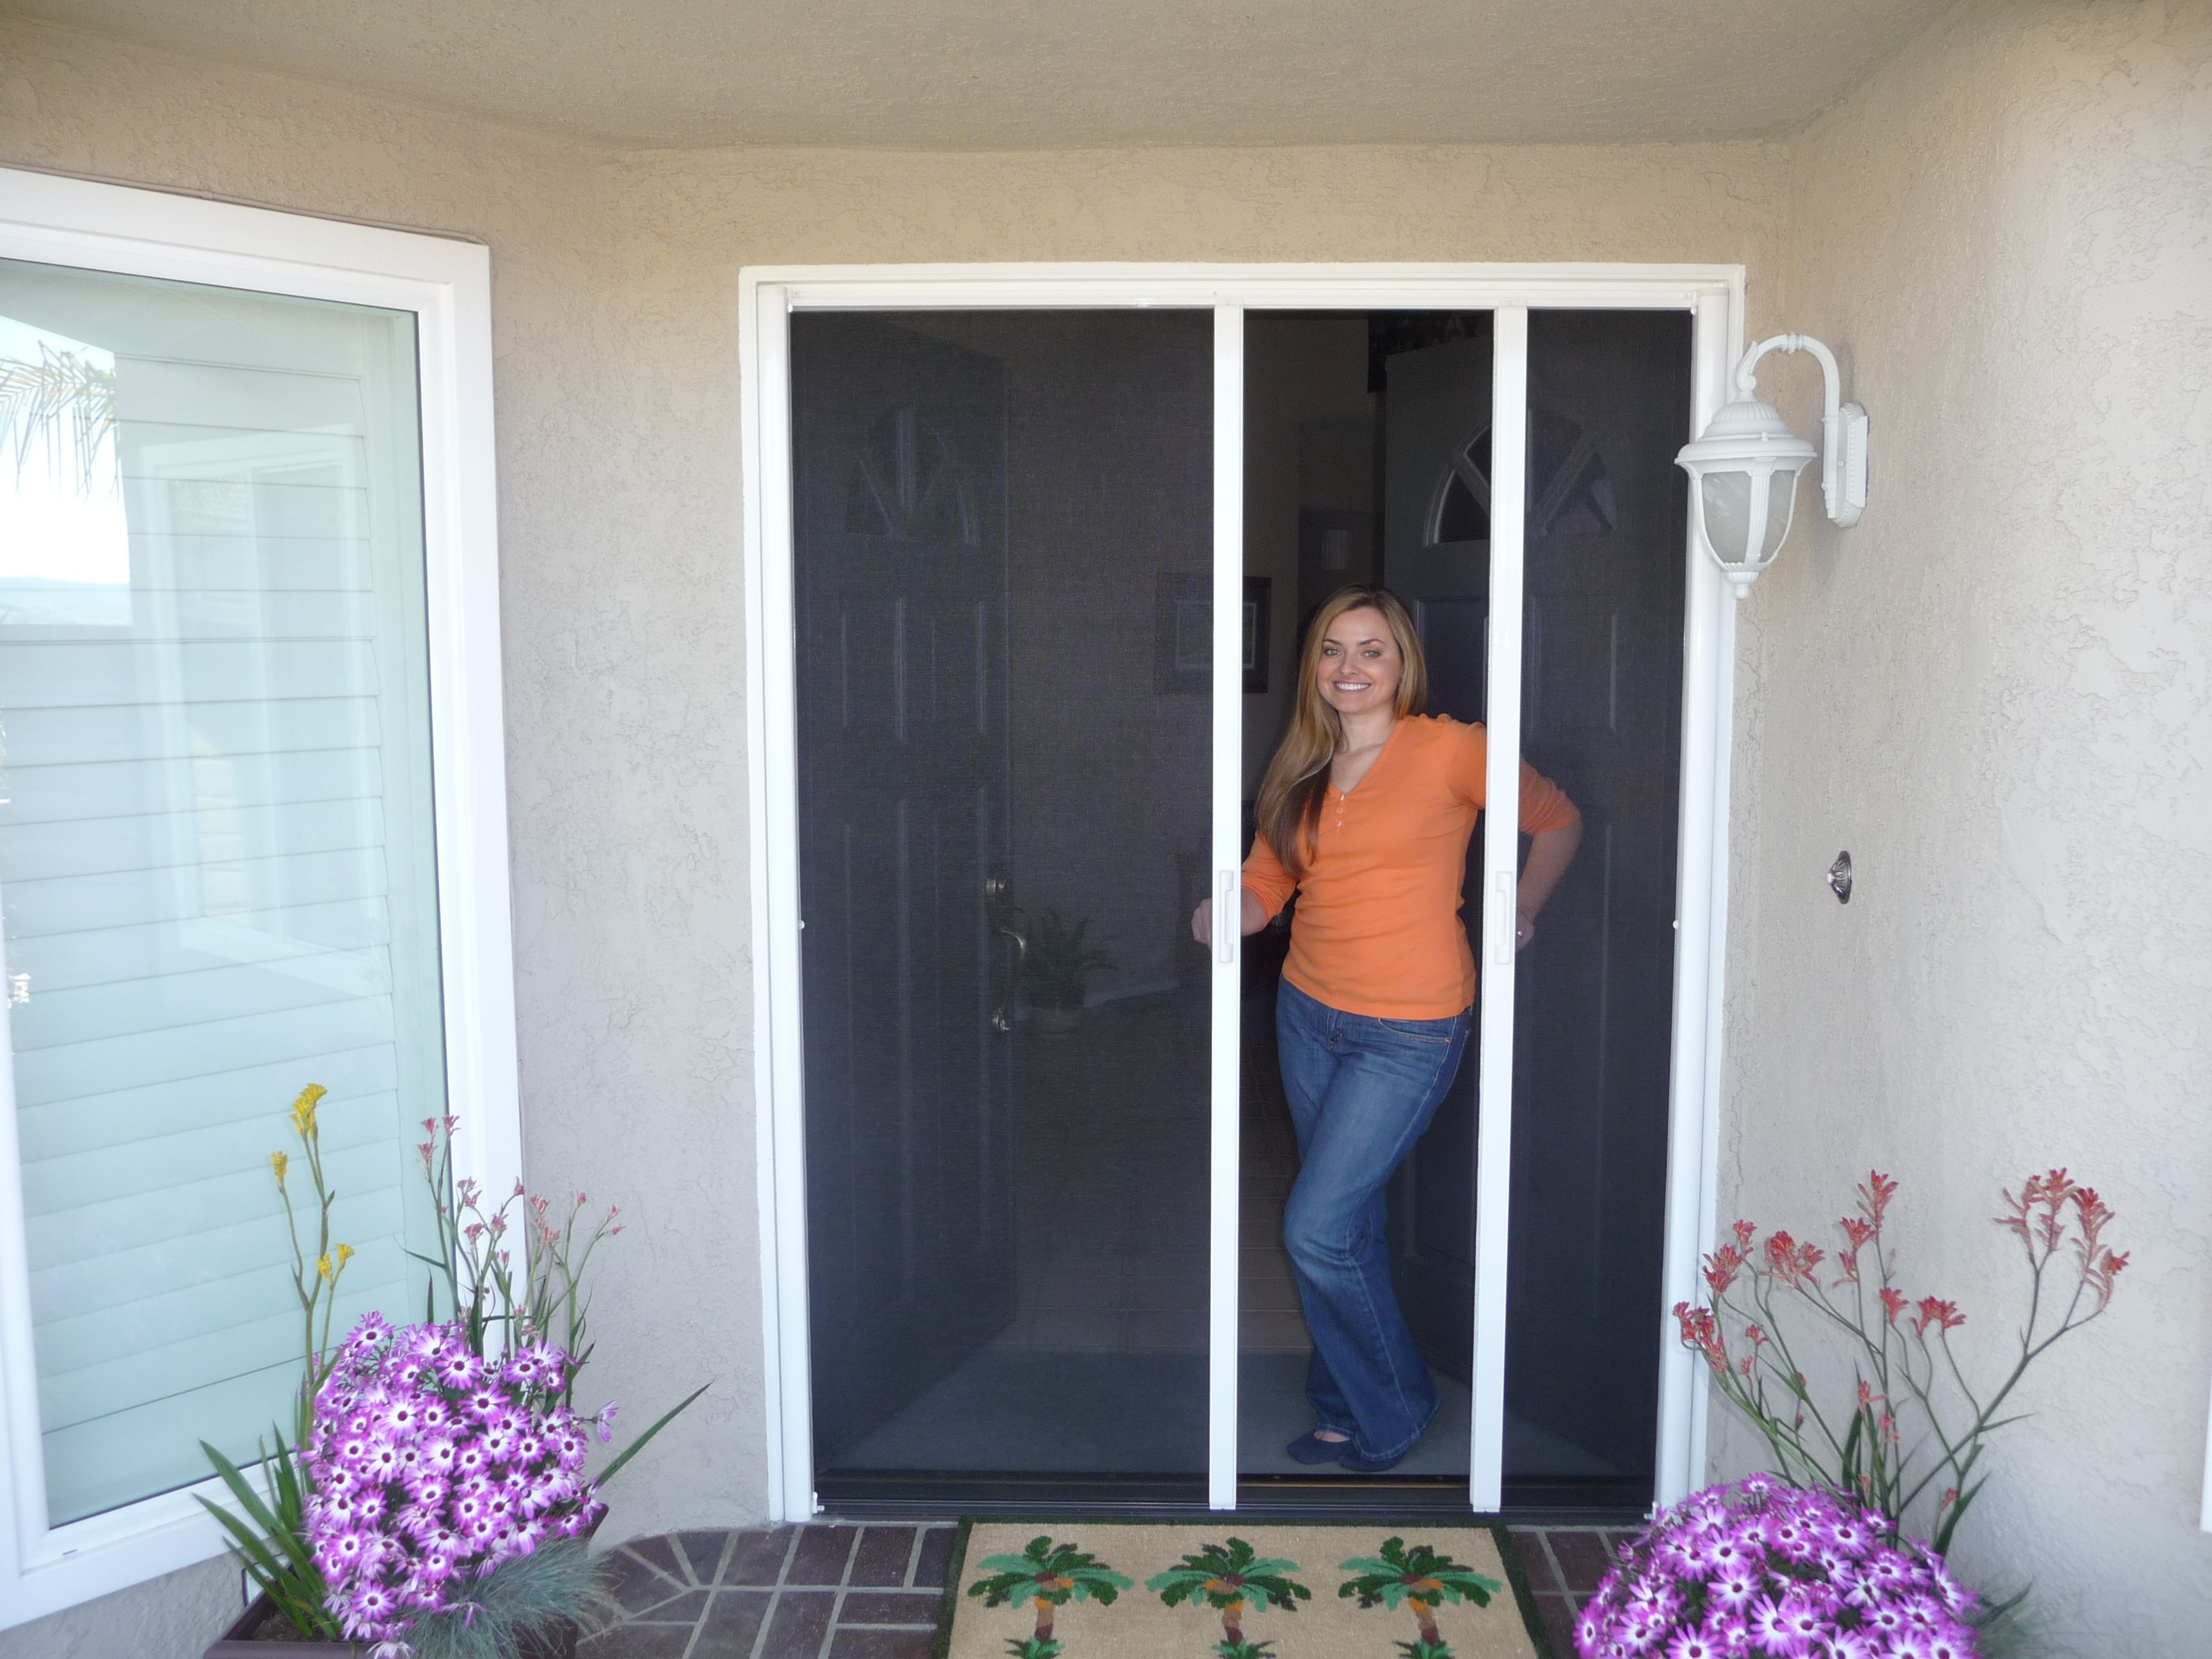 exterior french doors with screens. Classic Improvement Products Installs Closet Doors, StowAway Retractable Screen Interior And Exterior Shutters In Orange County Los Angeles. French Doors With Screens